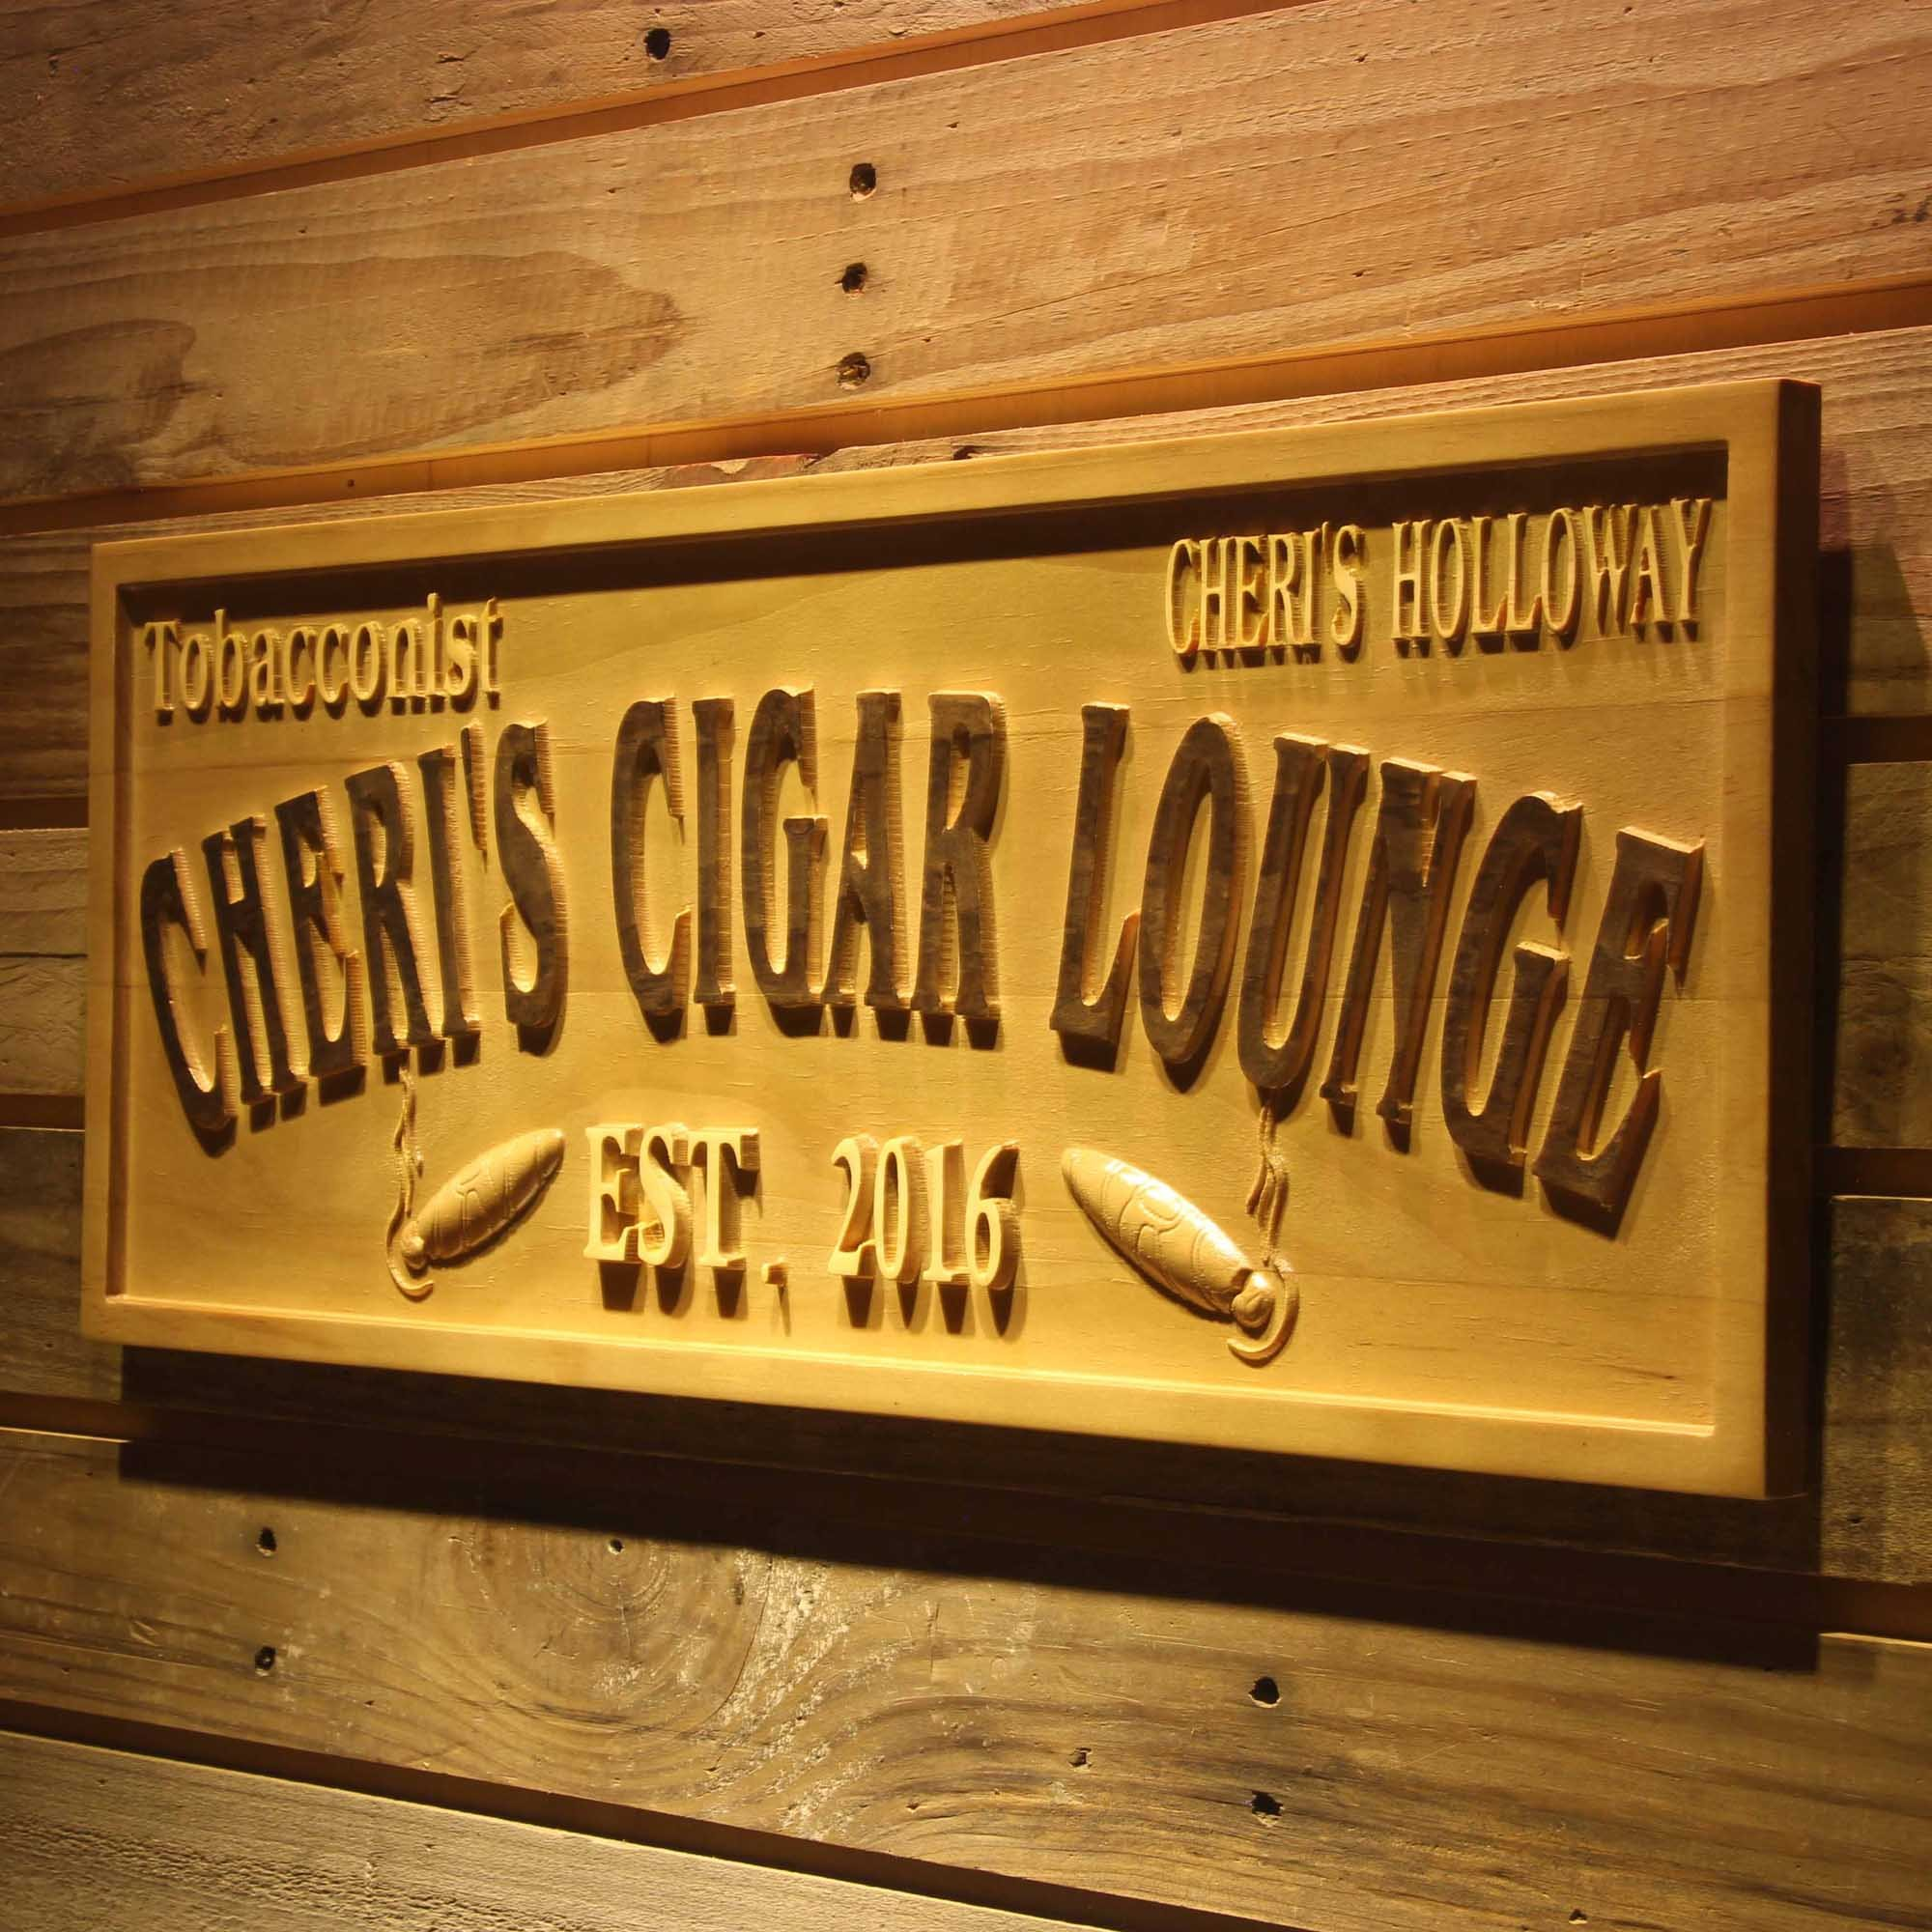 ADVPRO wpa0416 Tobacconist Name Personalized Cigar Lounge Shop Wood Engraved Wooden Sign - Standard 23'' x 9.25''